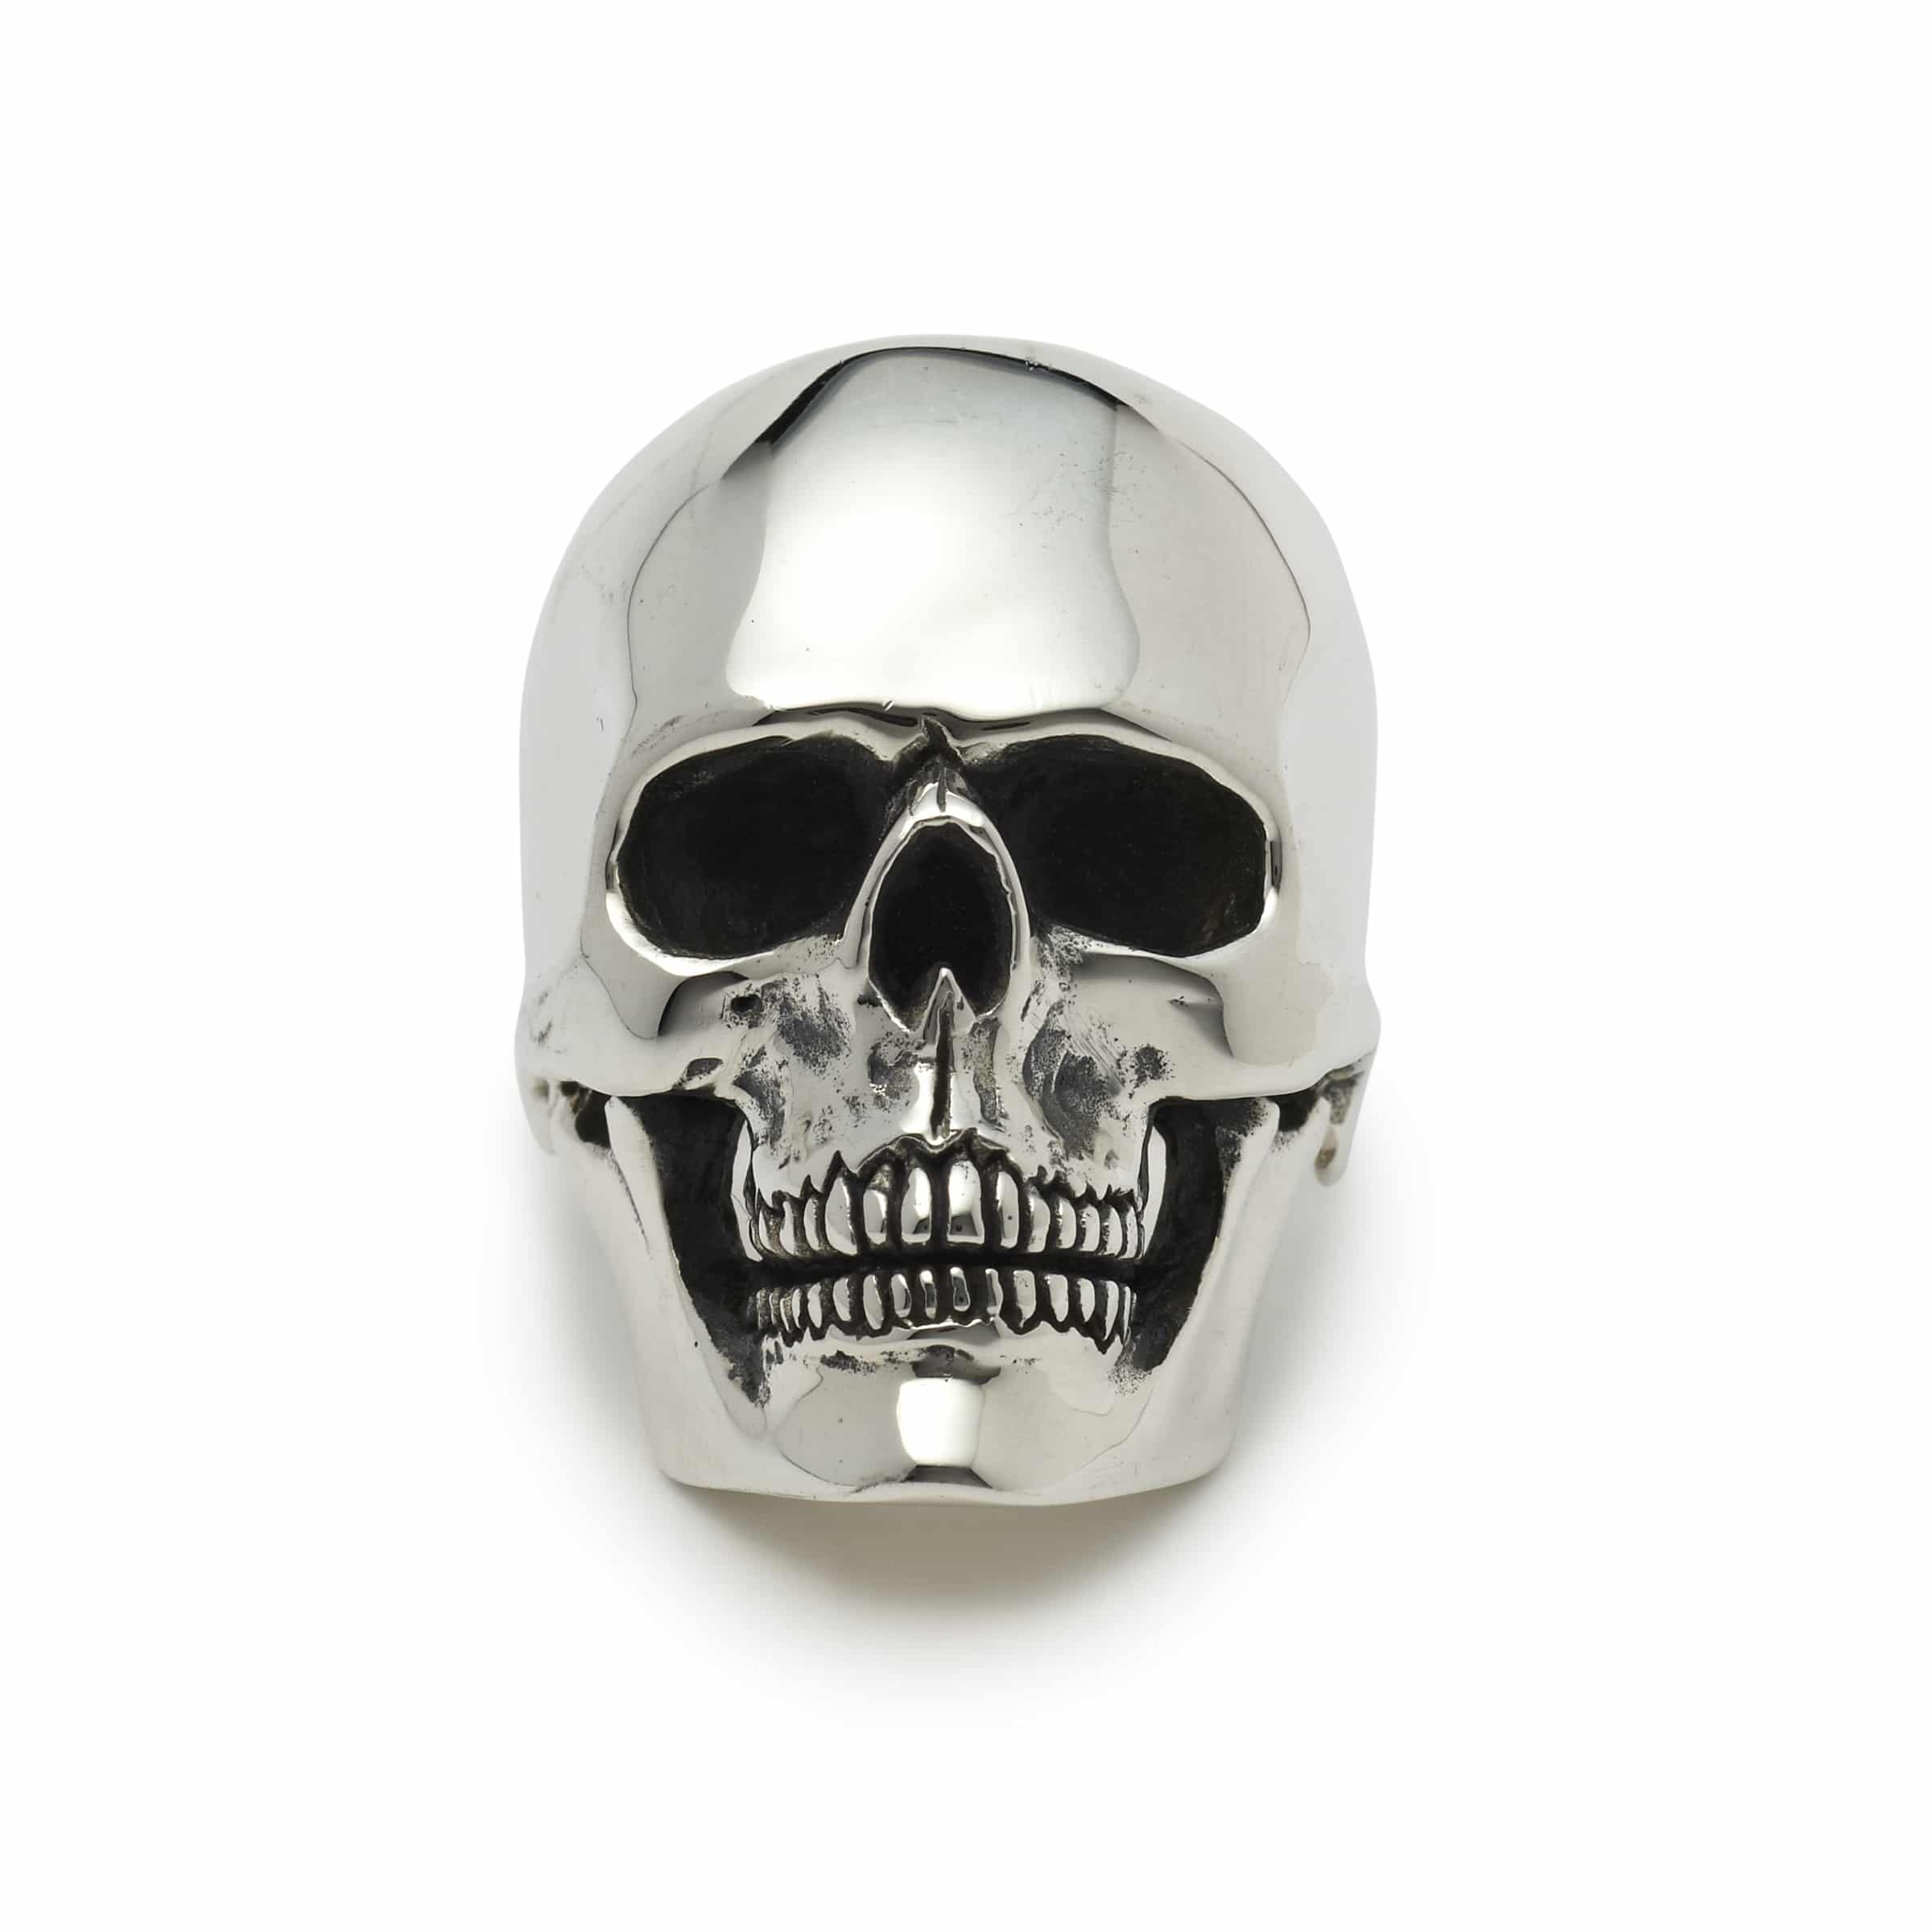 Medium Anatomical Skull Ring The Great Frog